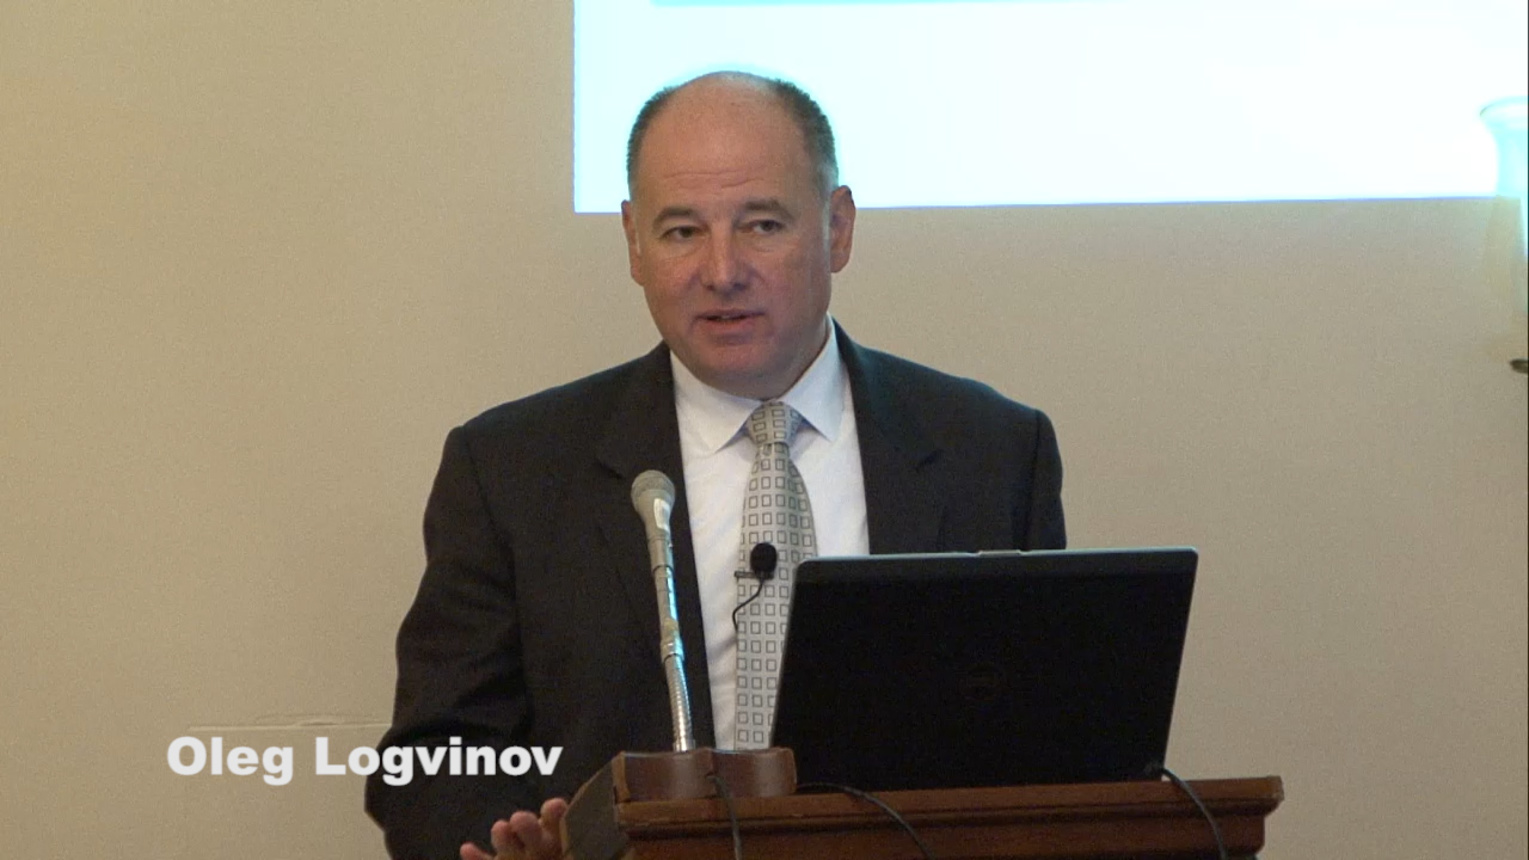 Net Neutrality Briefing - Oleg Logvinov - IoT Washington DC 2015